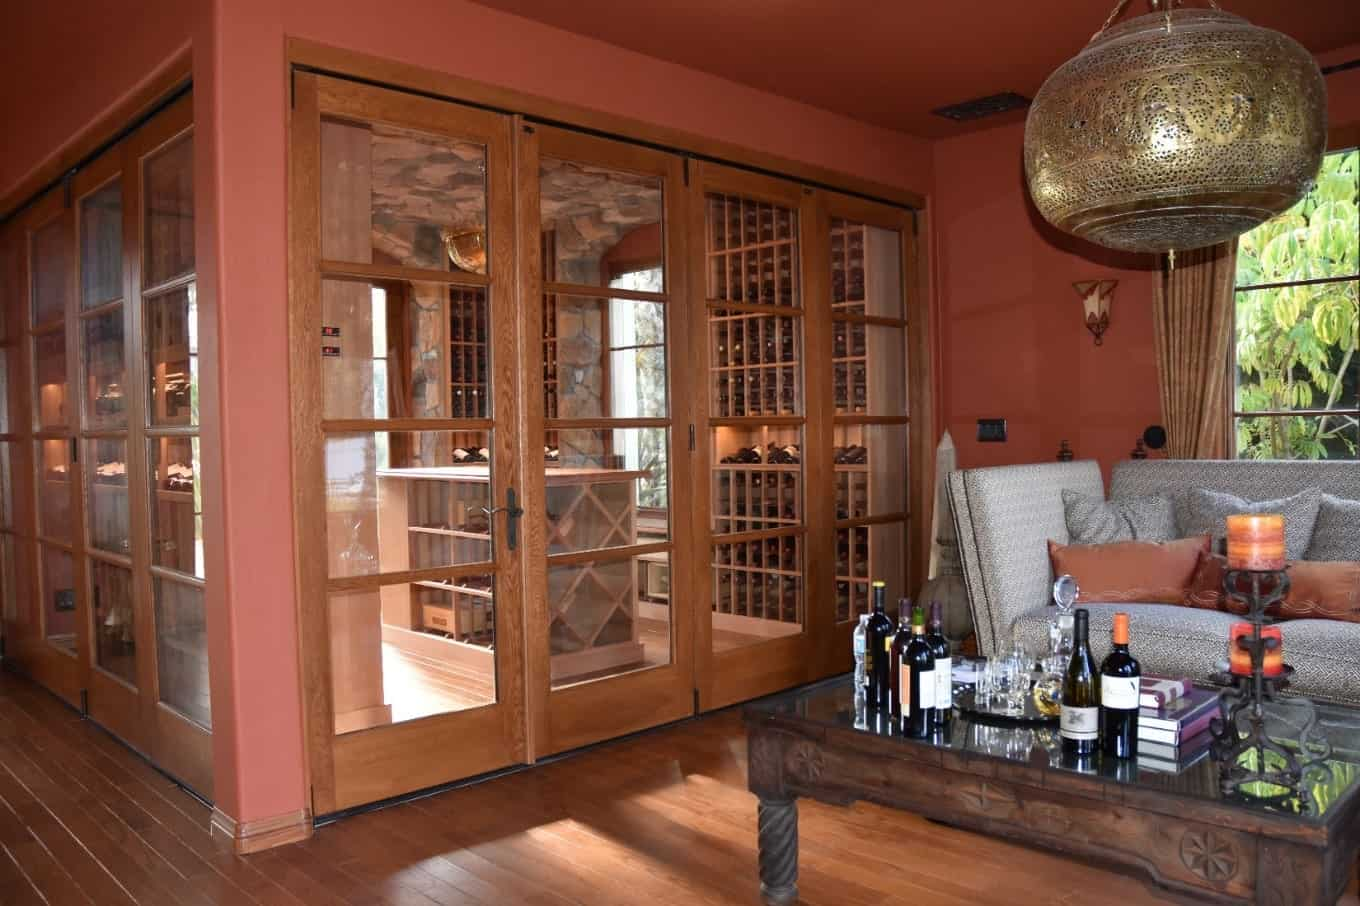 Glassed-in wine cellar with tasting island.  You can see this wine cellar from the living room.